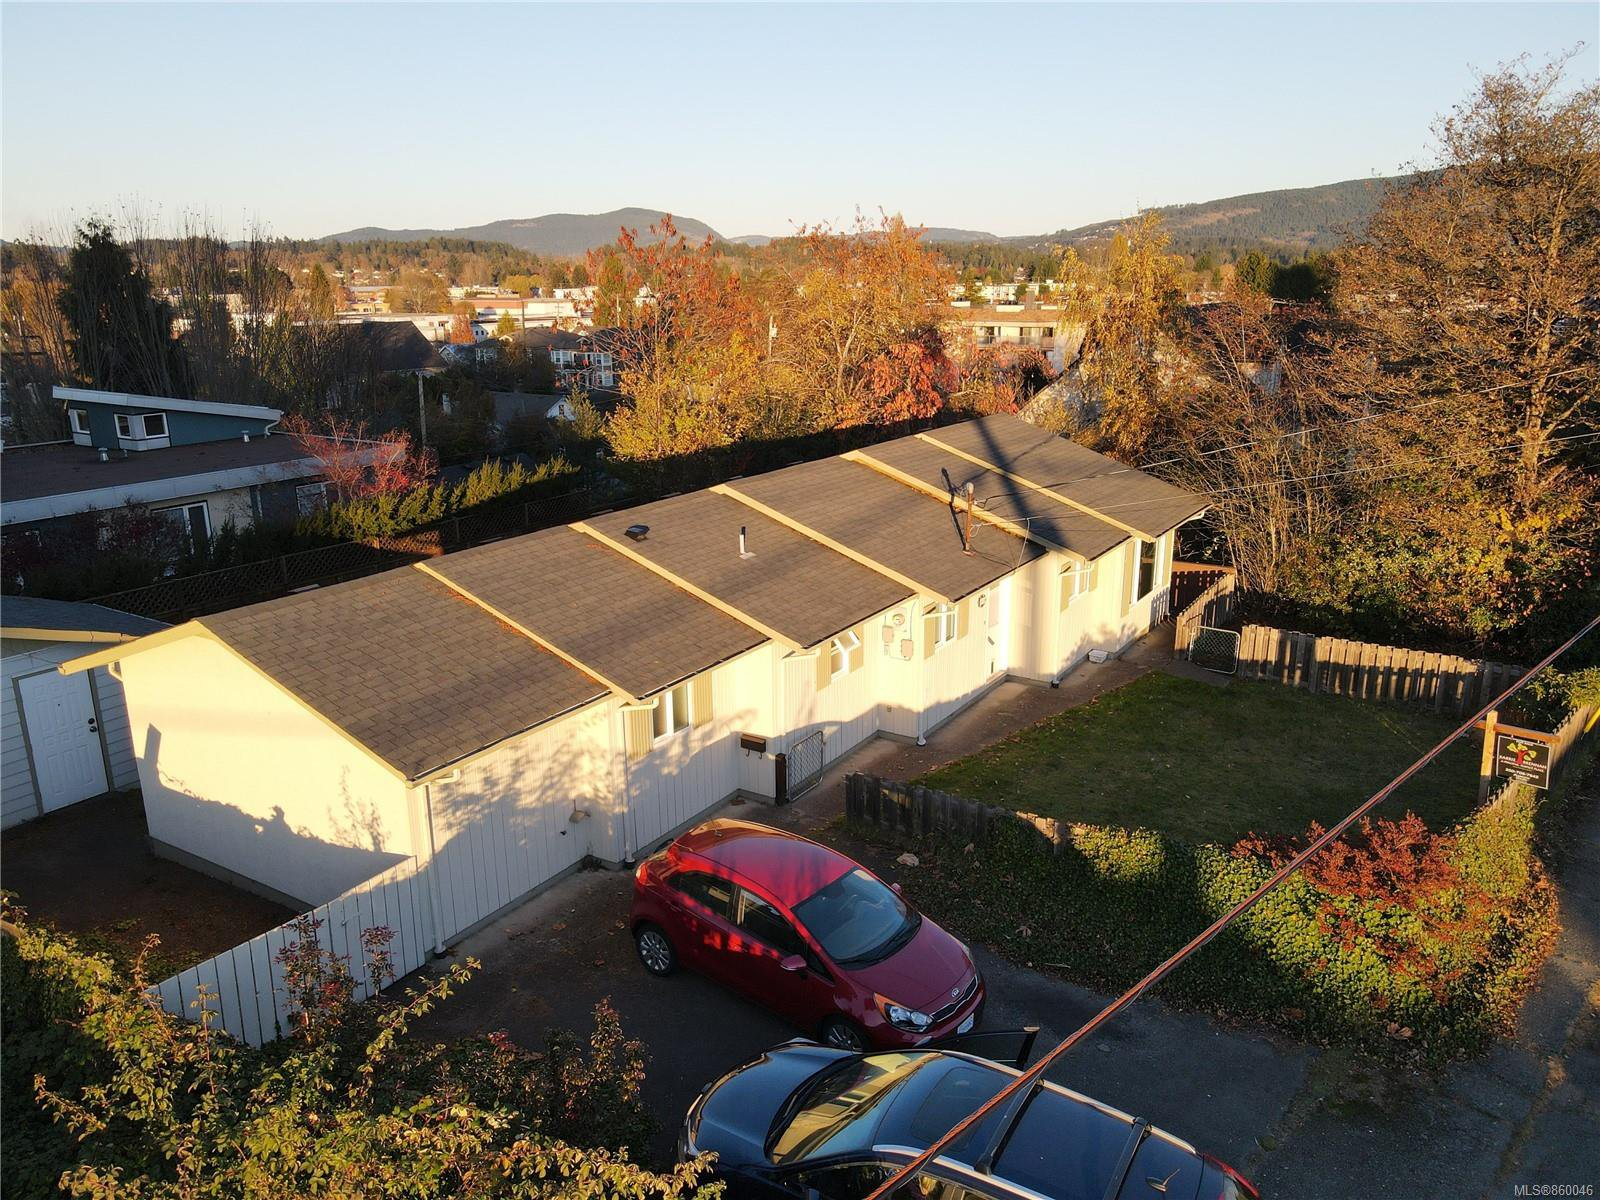 1300 sq ft, fully fenced rancher with parking for 3